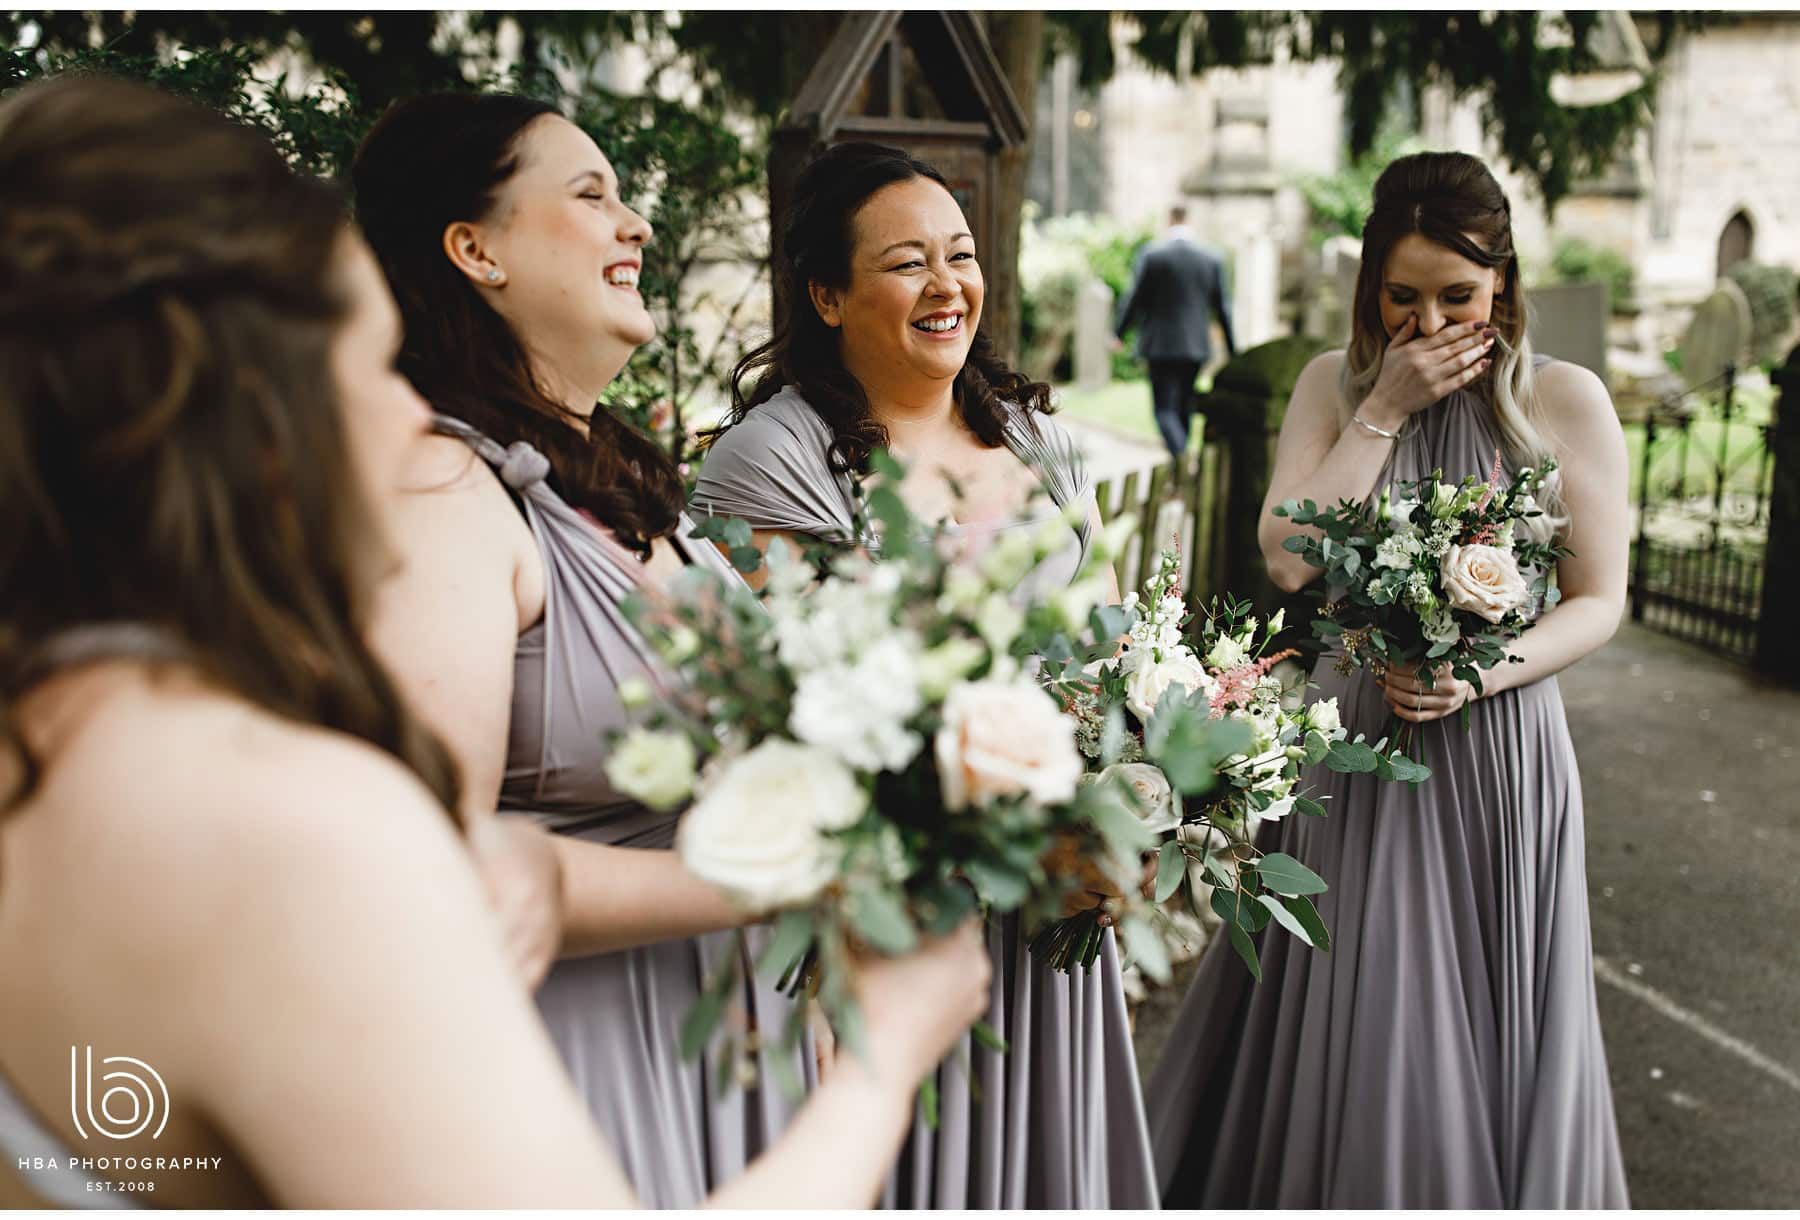 the bridesmaids smiling